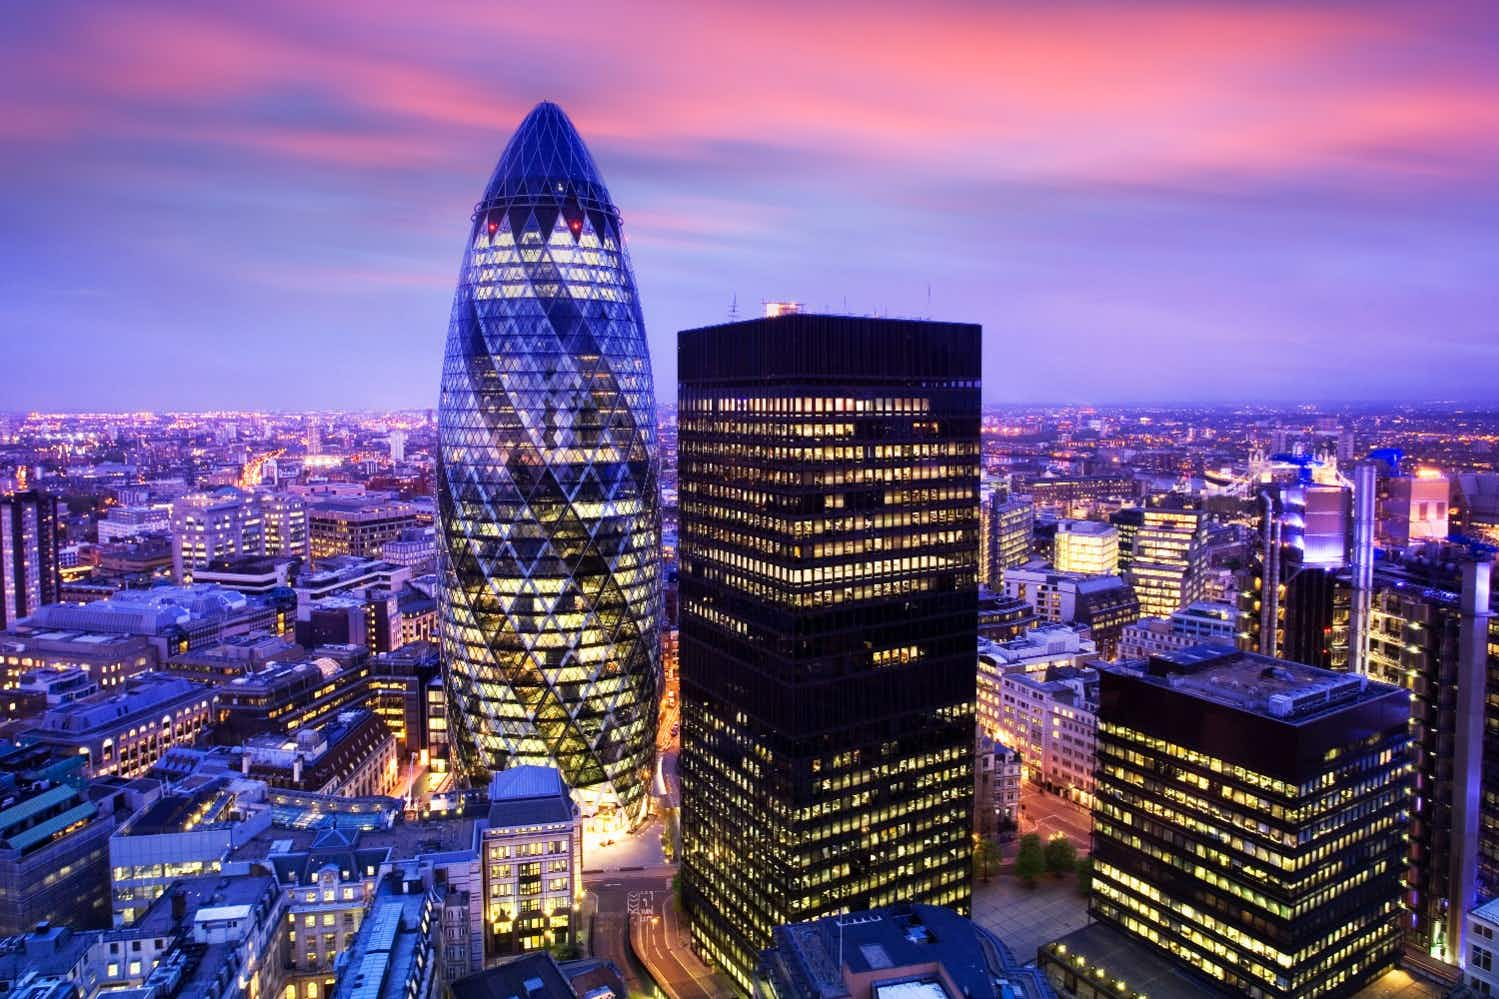 Get 360-degree views of London at the Gherkin's new bar and restaurant